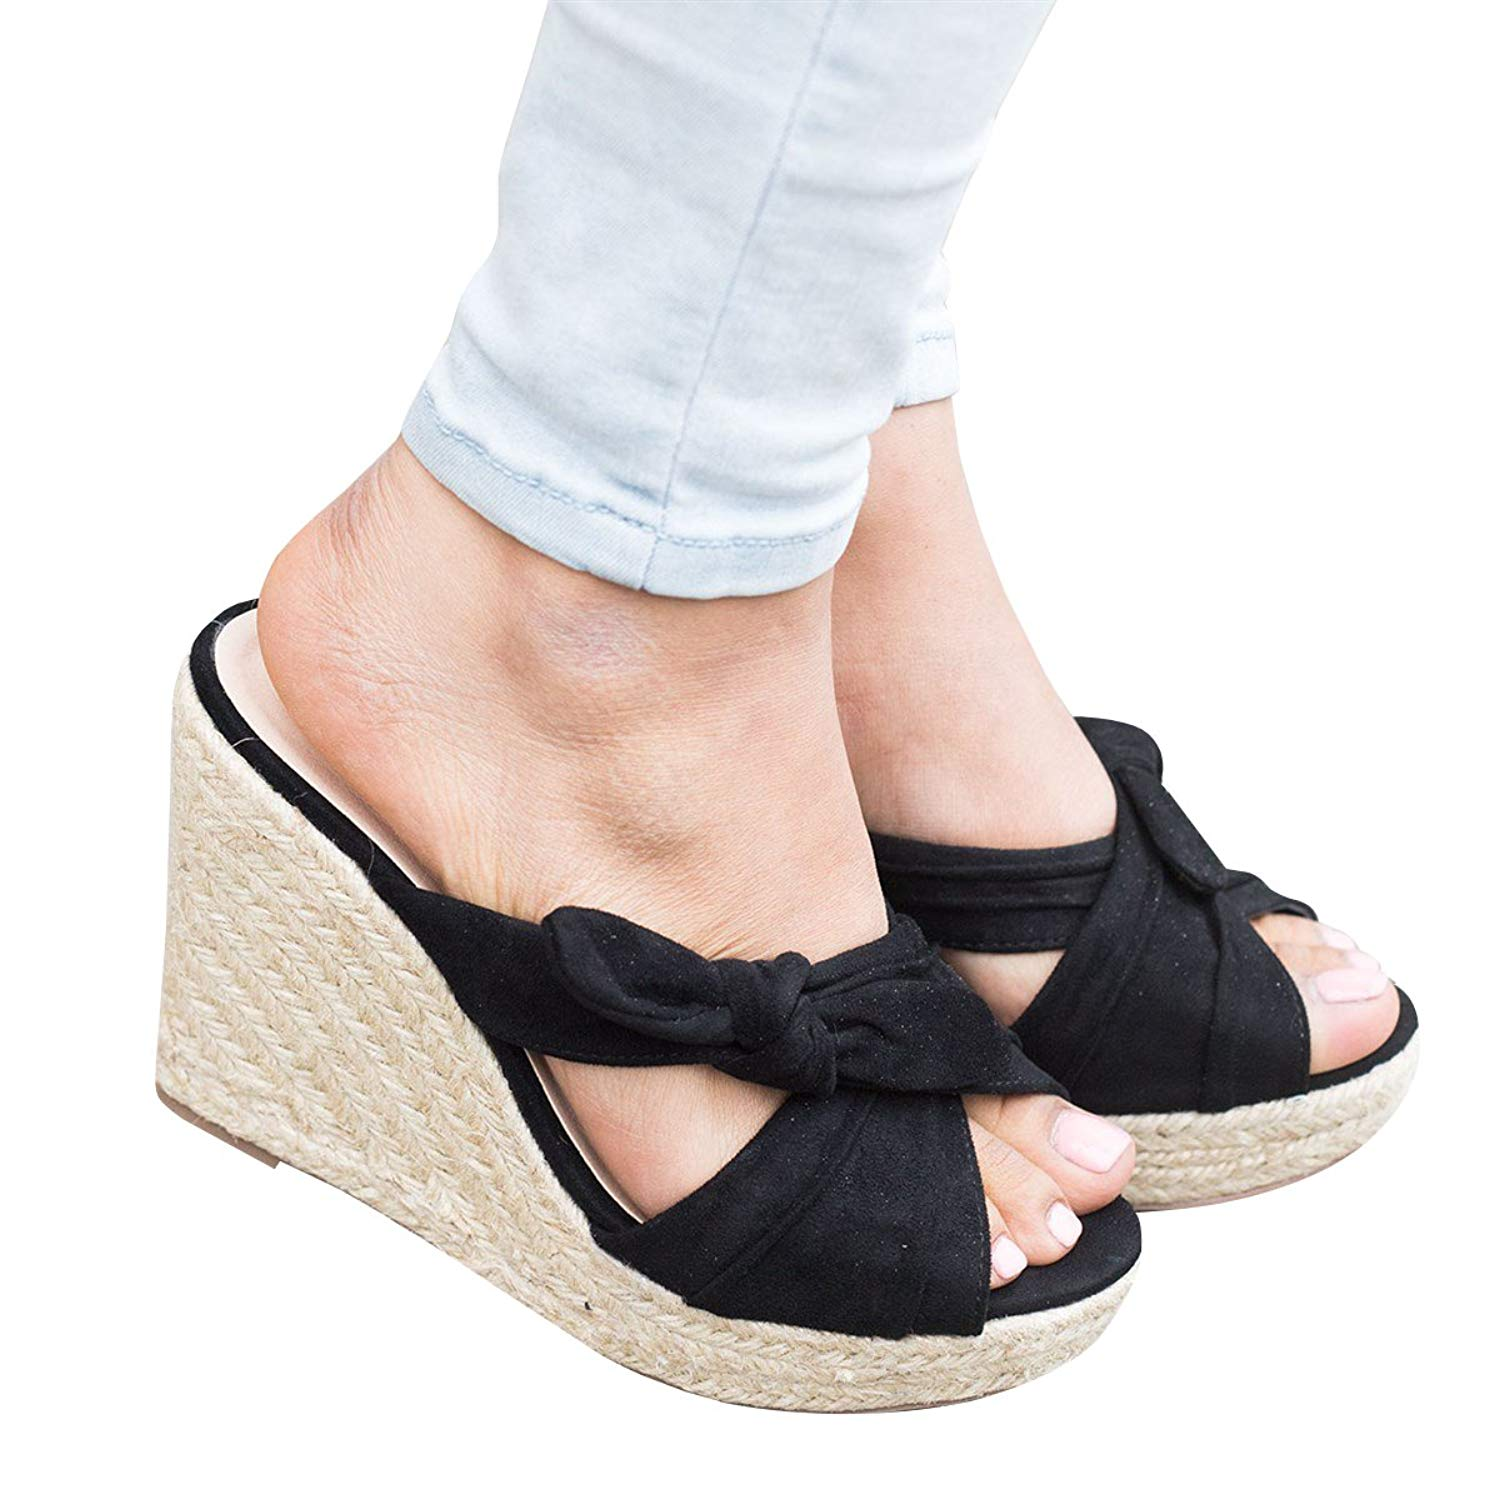 3b8af2313e5 Get Quotations · Womens Wedges Thong Flip Flop Peep Toe Slip On Cross Strap  Bow Espadrilles Platform Slingback Sandal